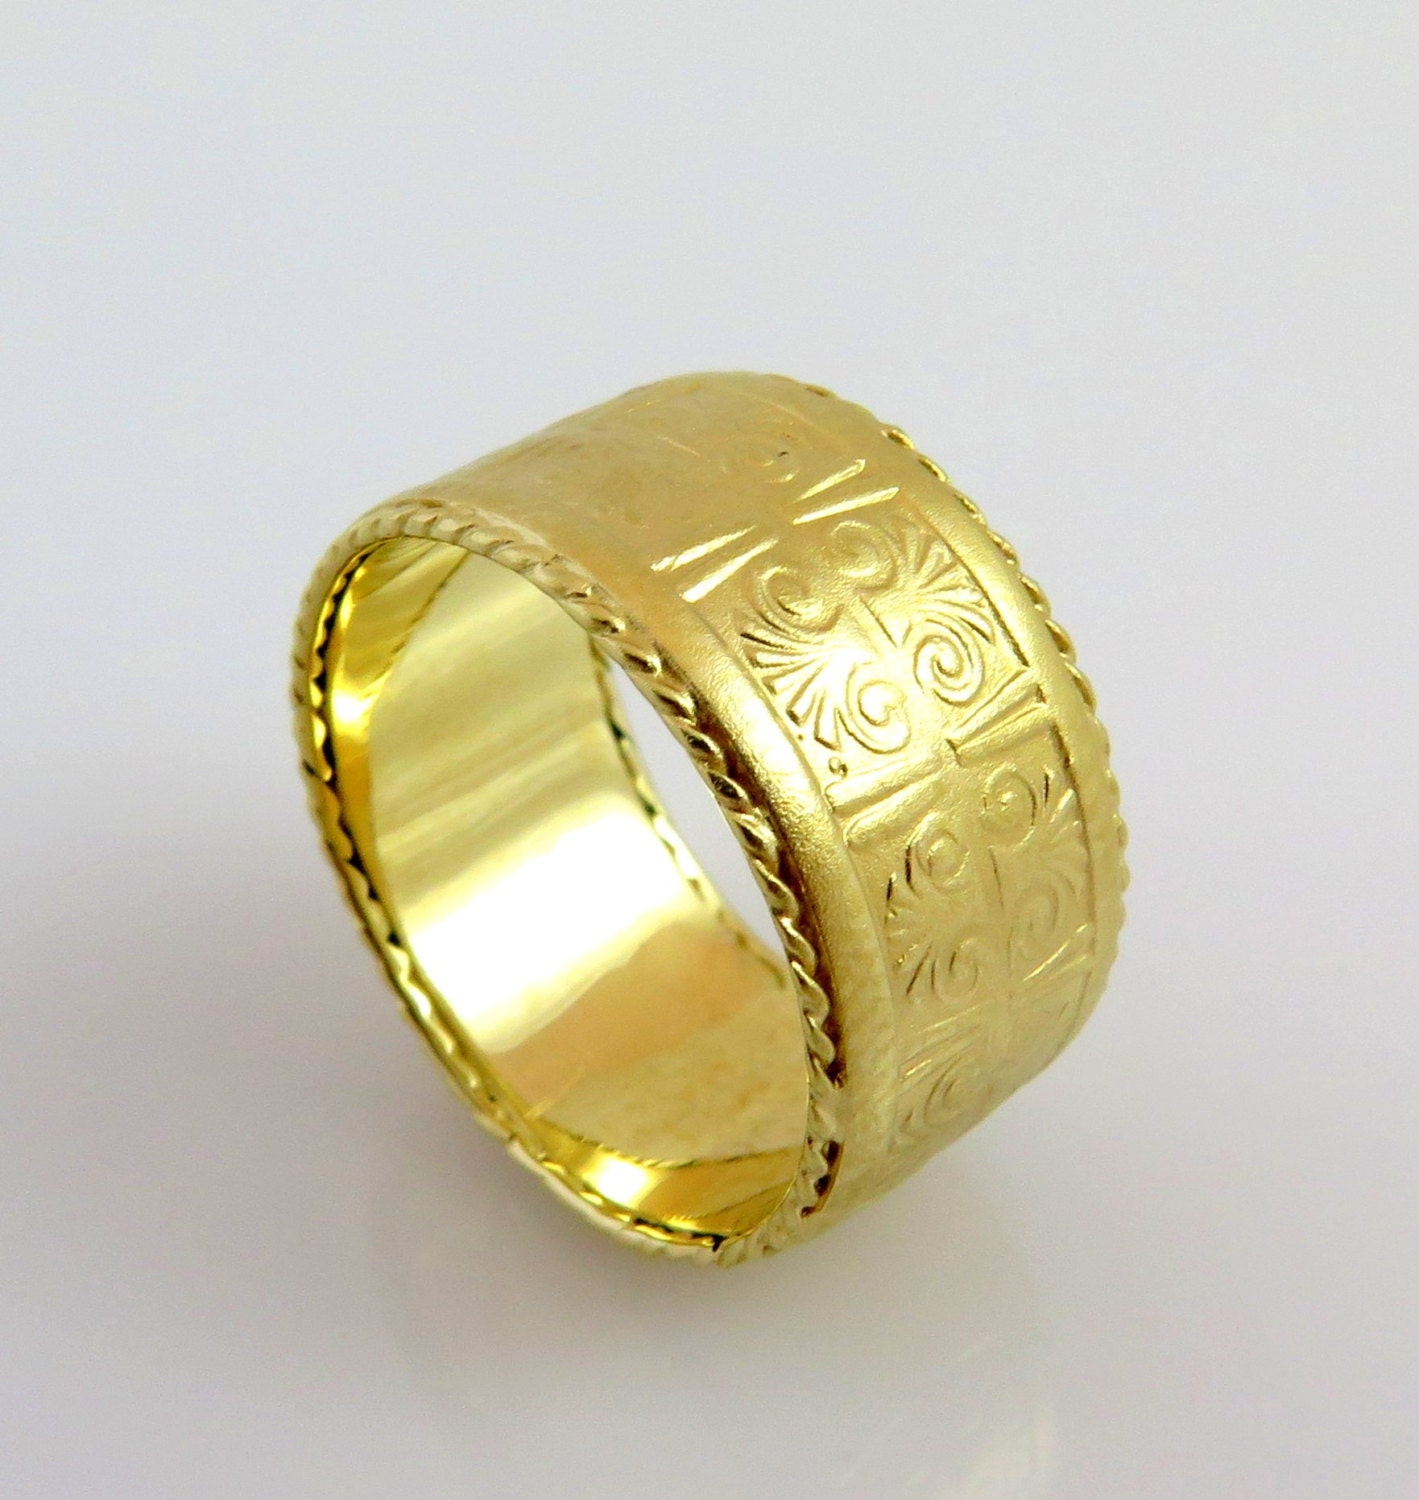 tmjx listing wedding ring gold il pattern zoom fullxfull unique band egyptian